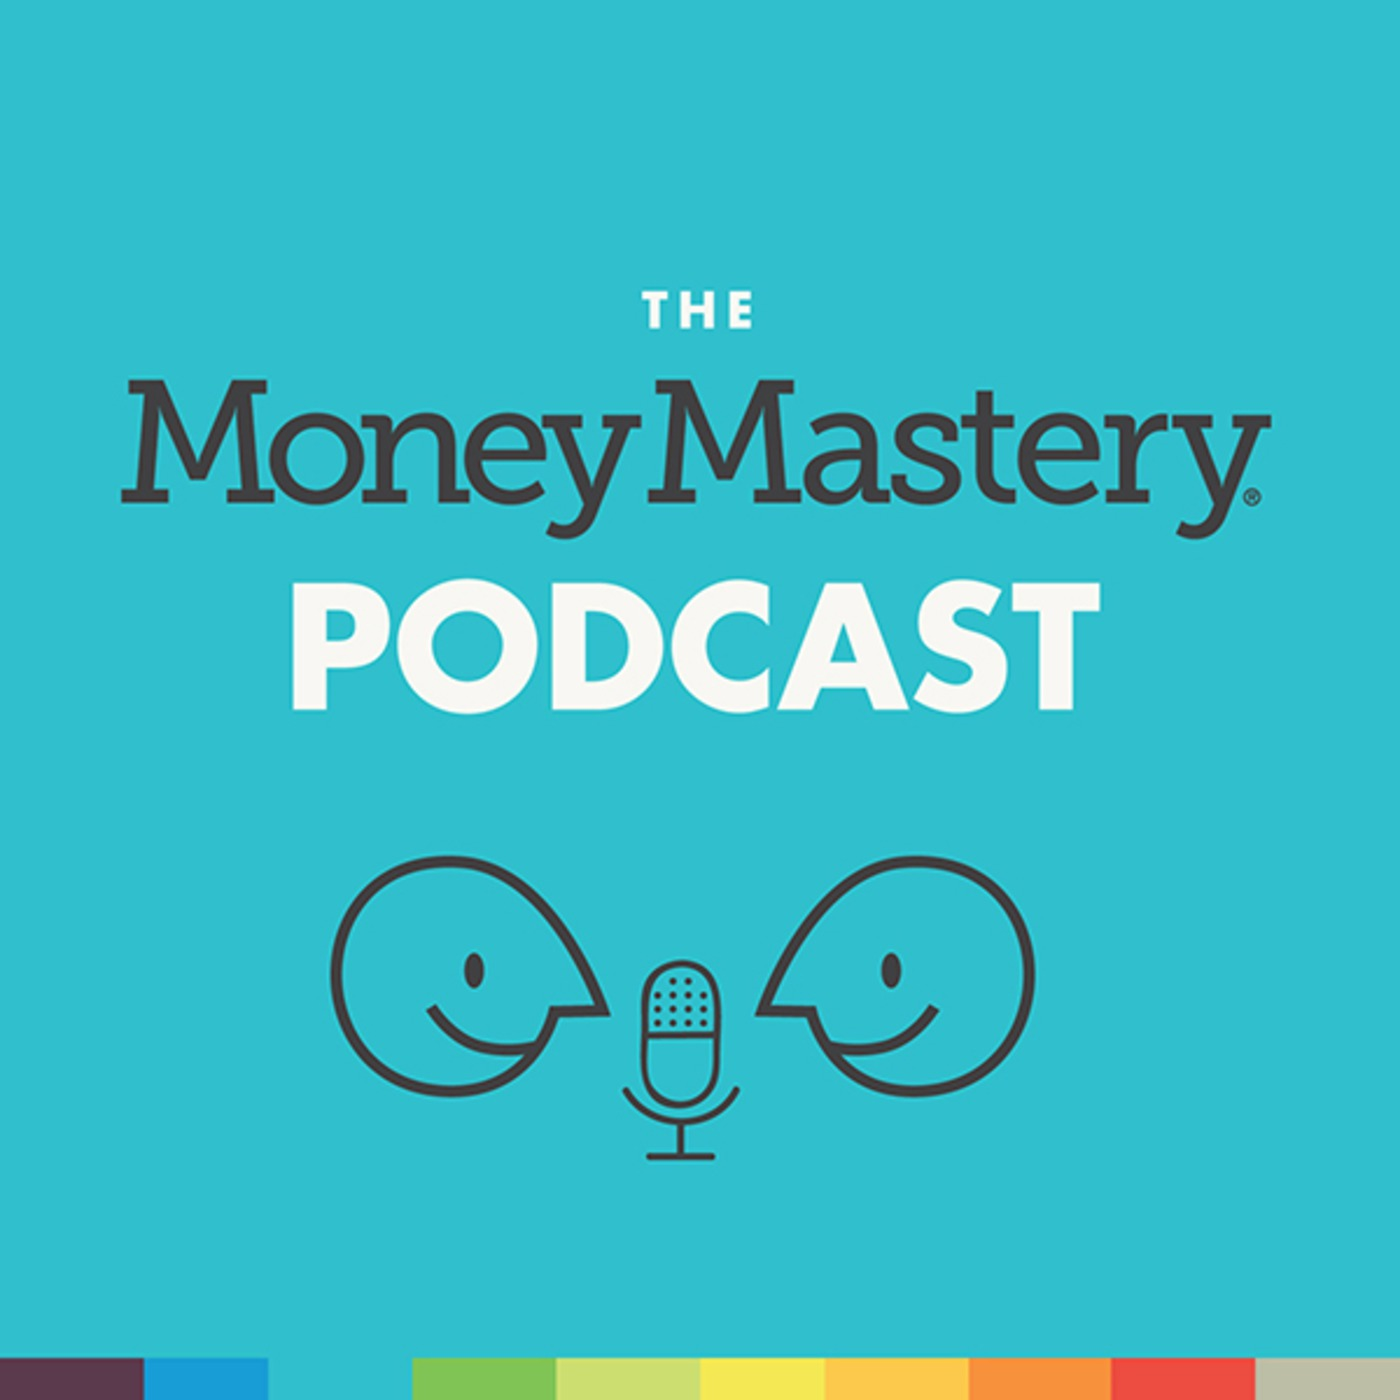 Money Mastery Podcast